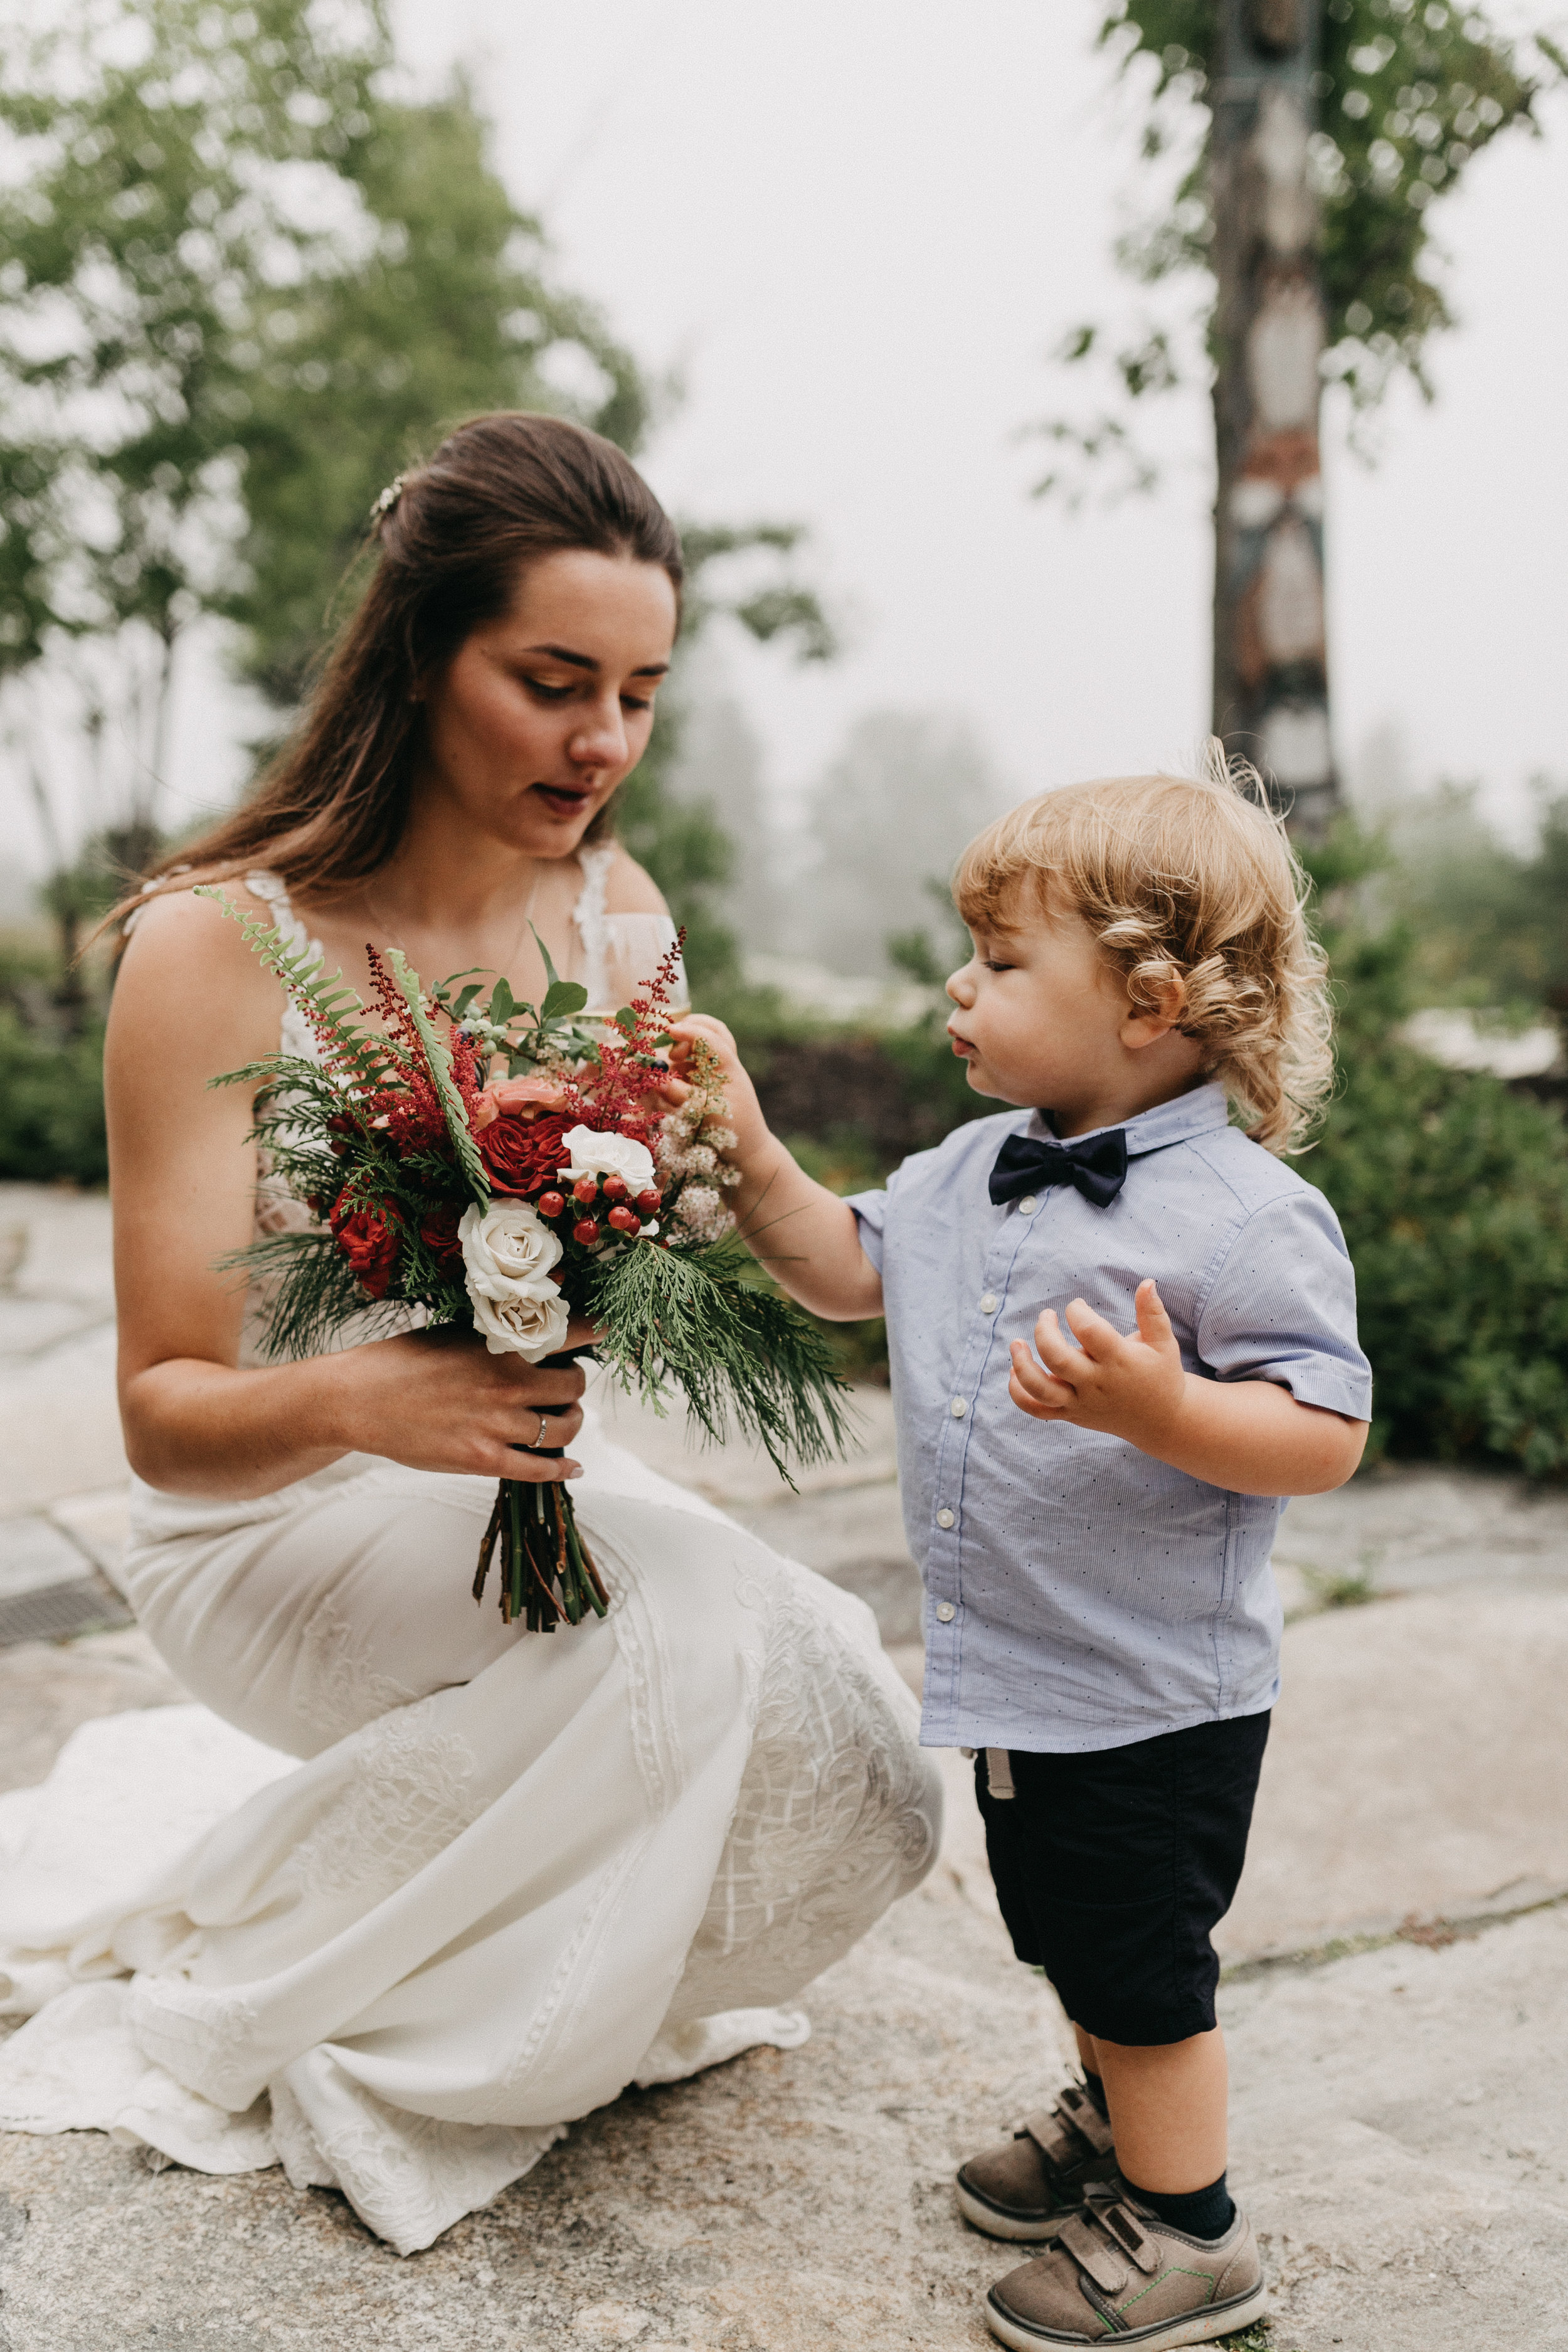 Maine Seasons Events bluberry bridal bouquet, Photo by Emily Delamater